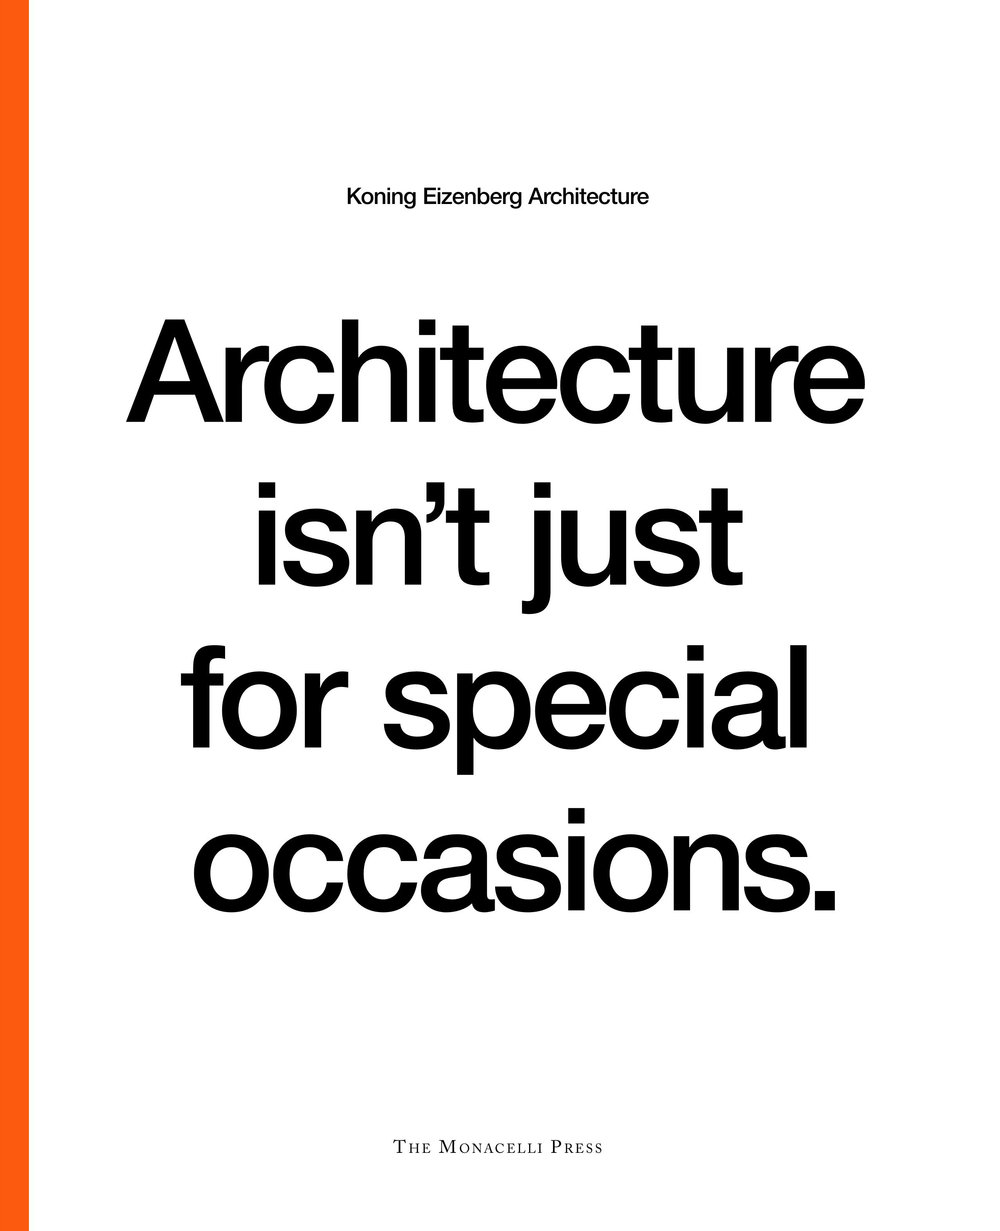 Architecture isn't just for special occasions, 2006